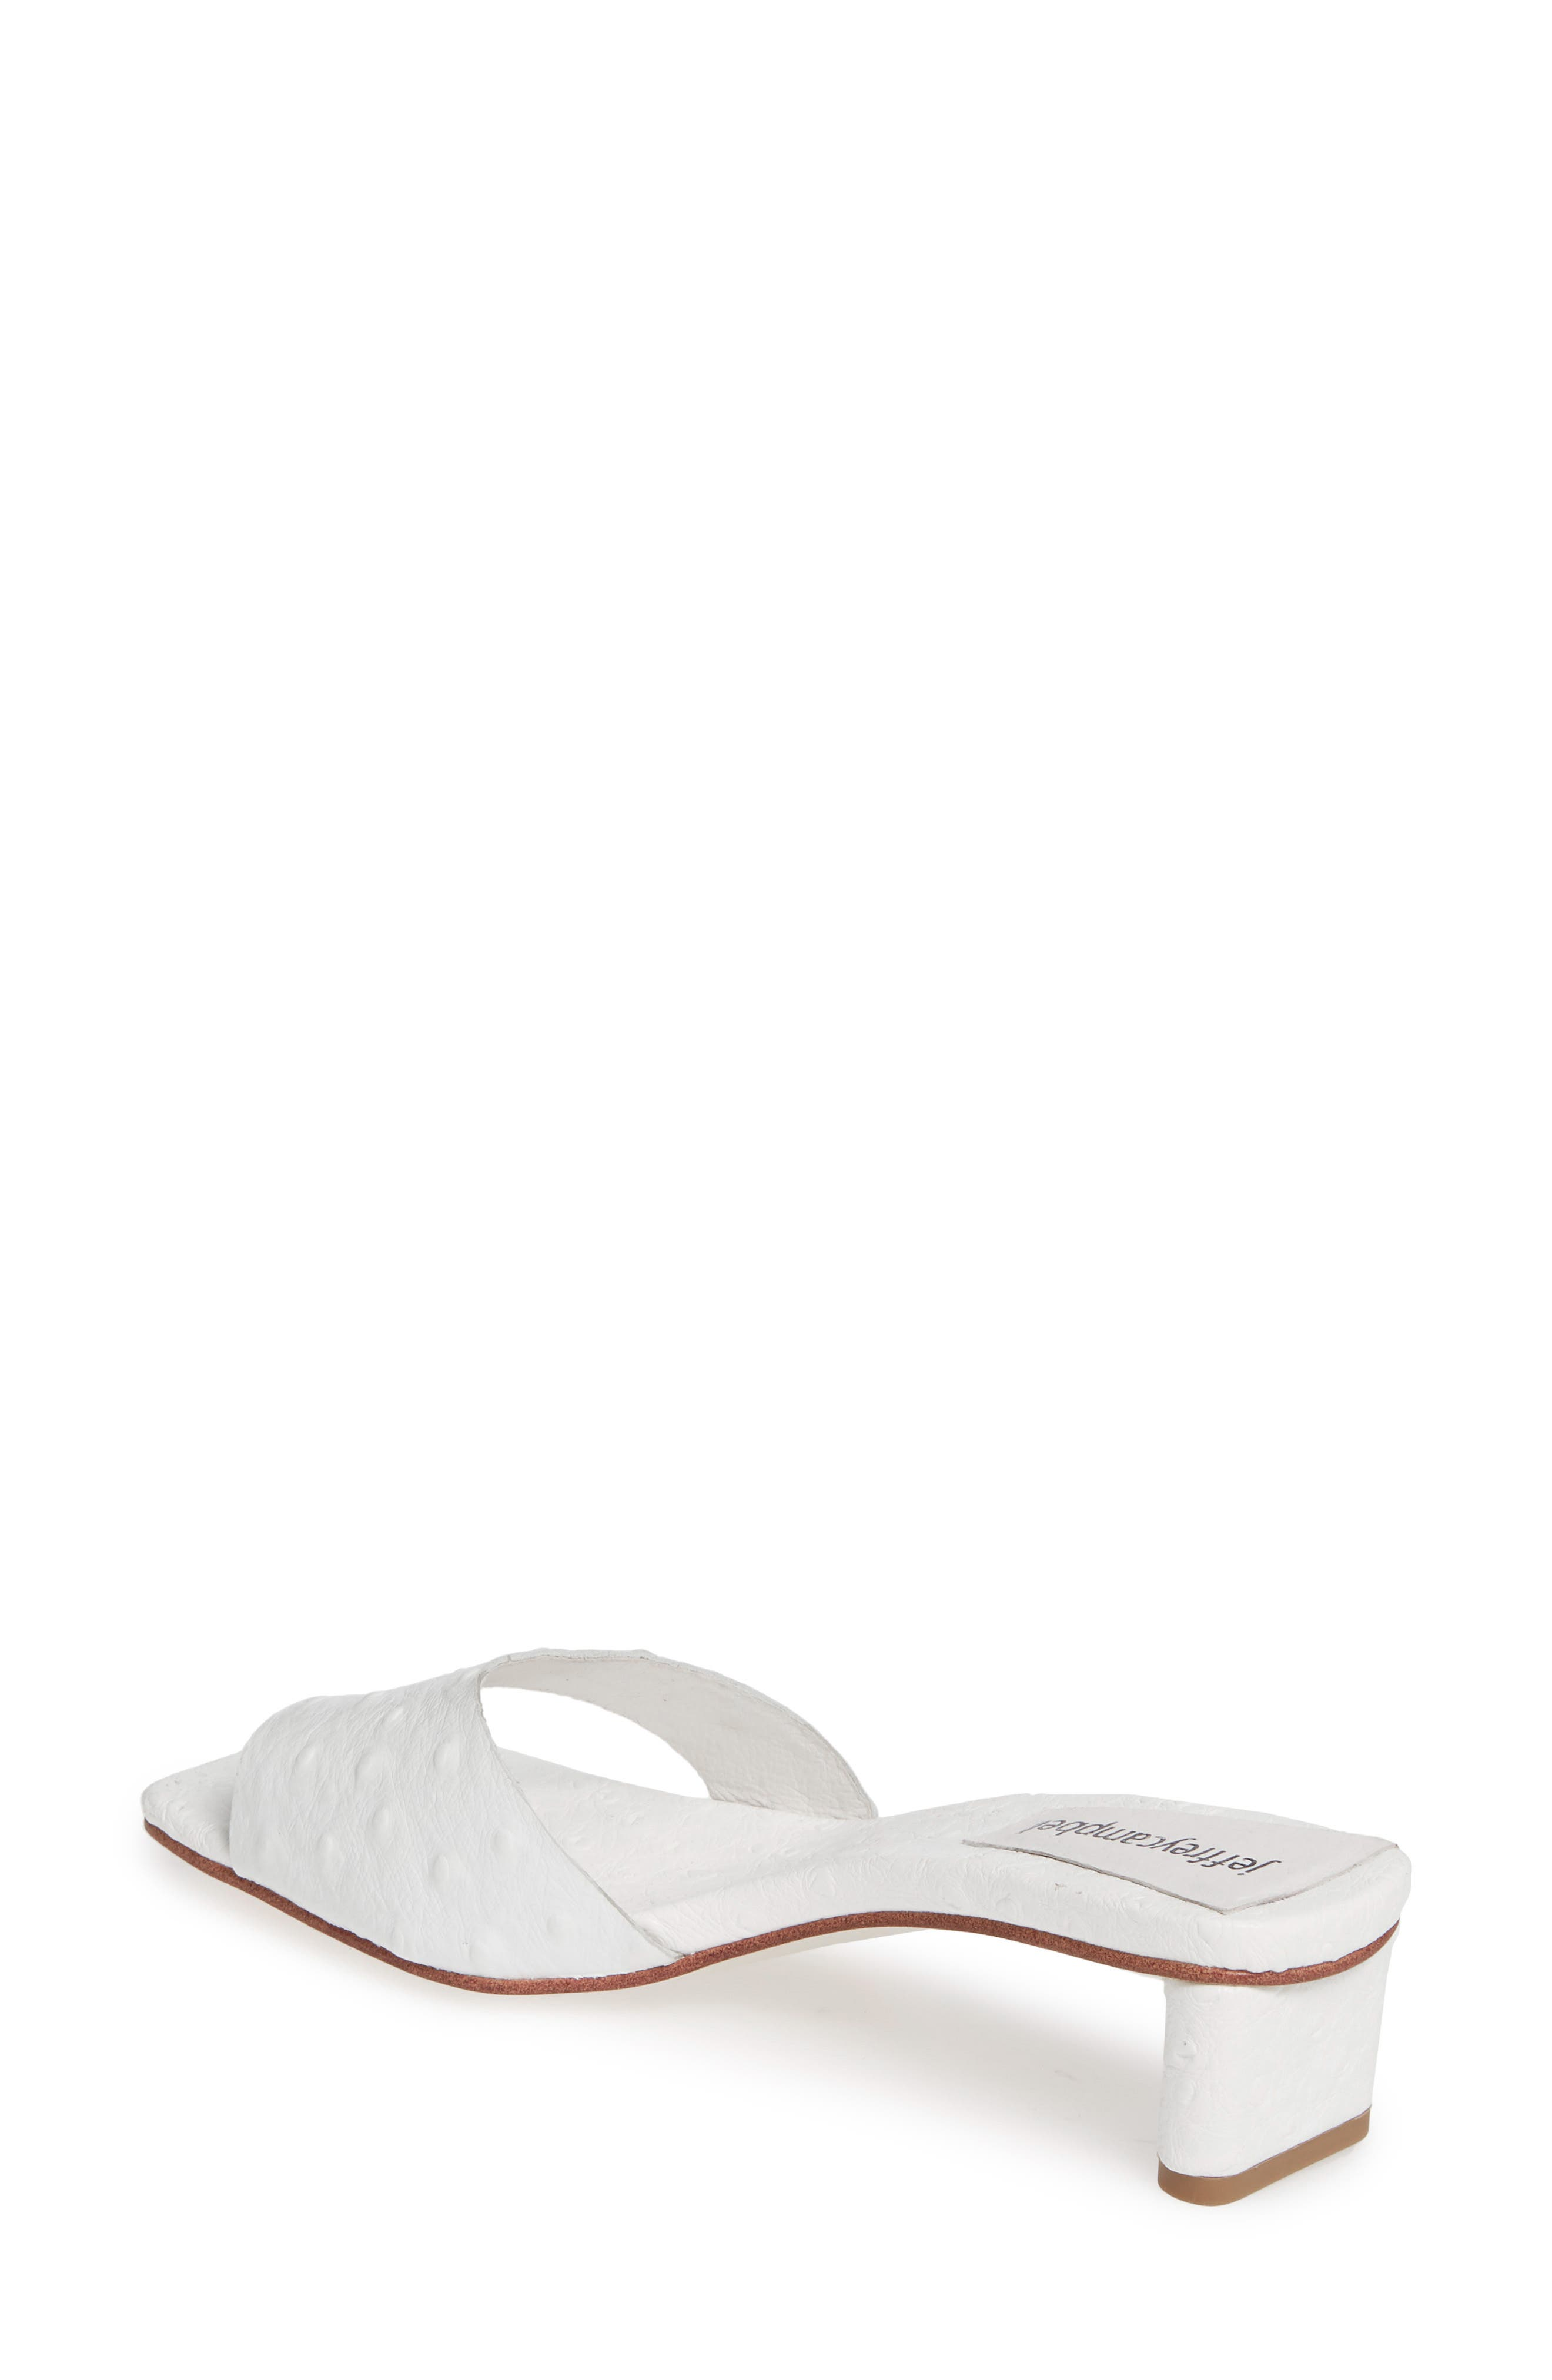 JEFFREY CAMPBELL, Teclado Slide Sandal, Alternate thumbnail 2, color, 121